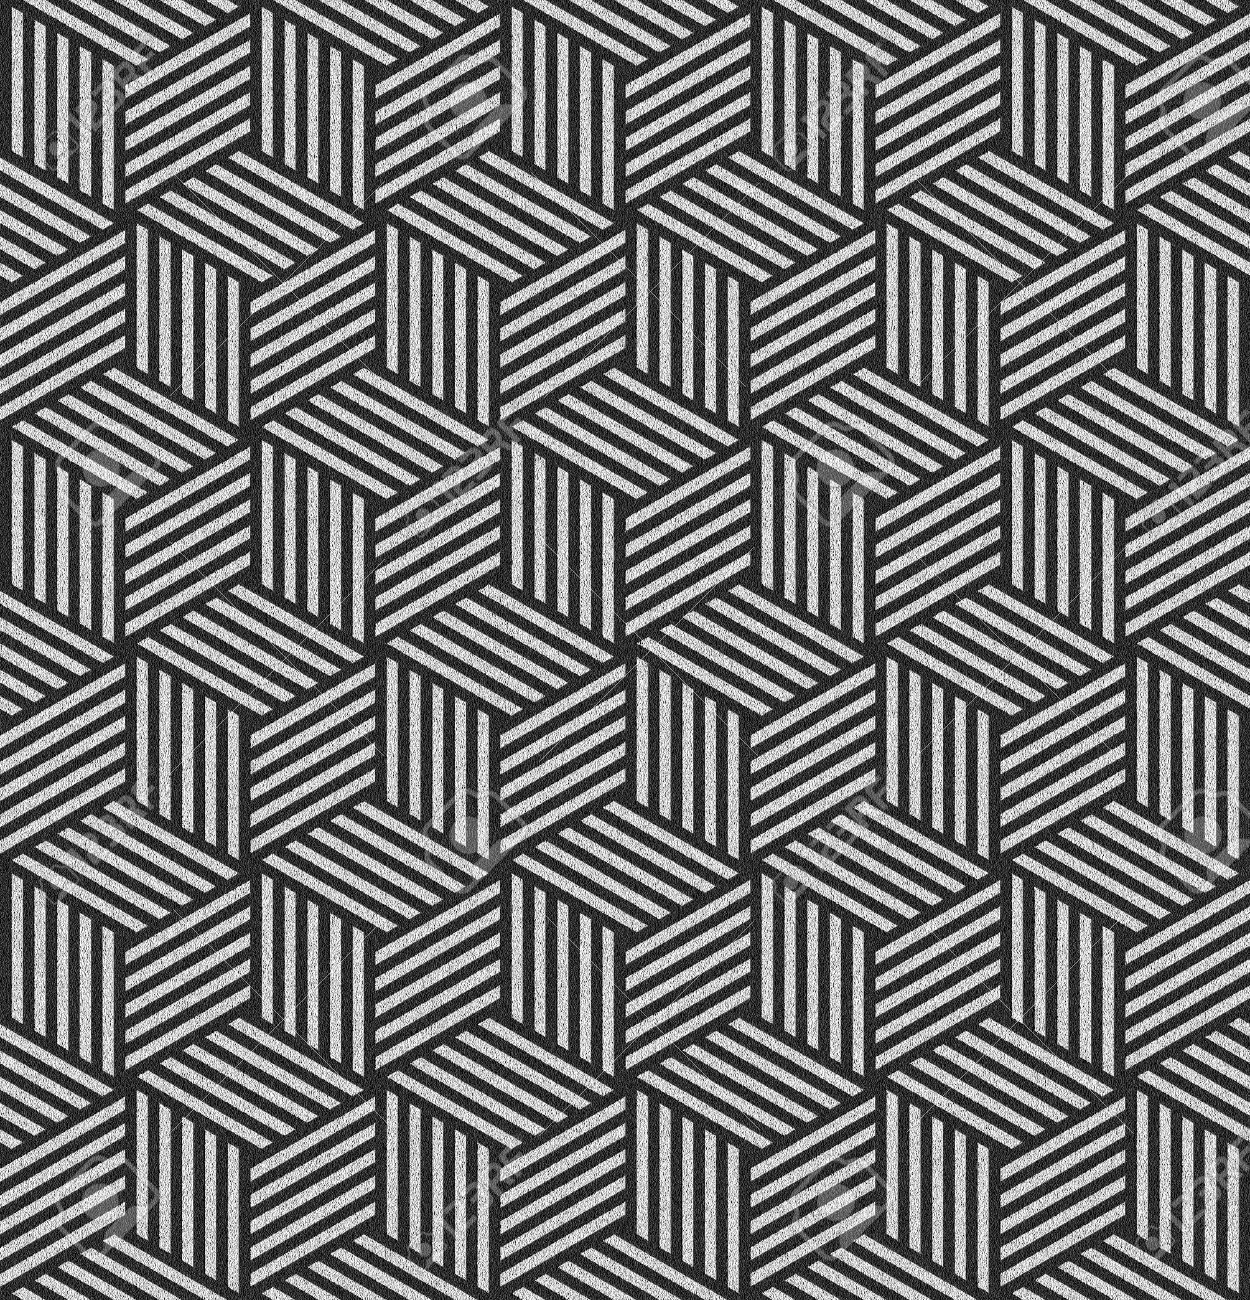 Seamless pattern in op art design. Geometric hexagons and diamonds texture. Abstract textured background. Illustration. Stock Illustration - 14497547